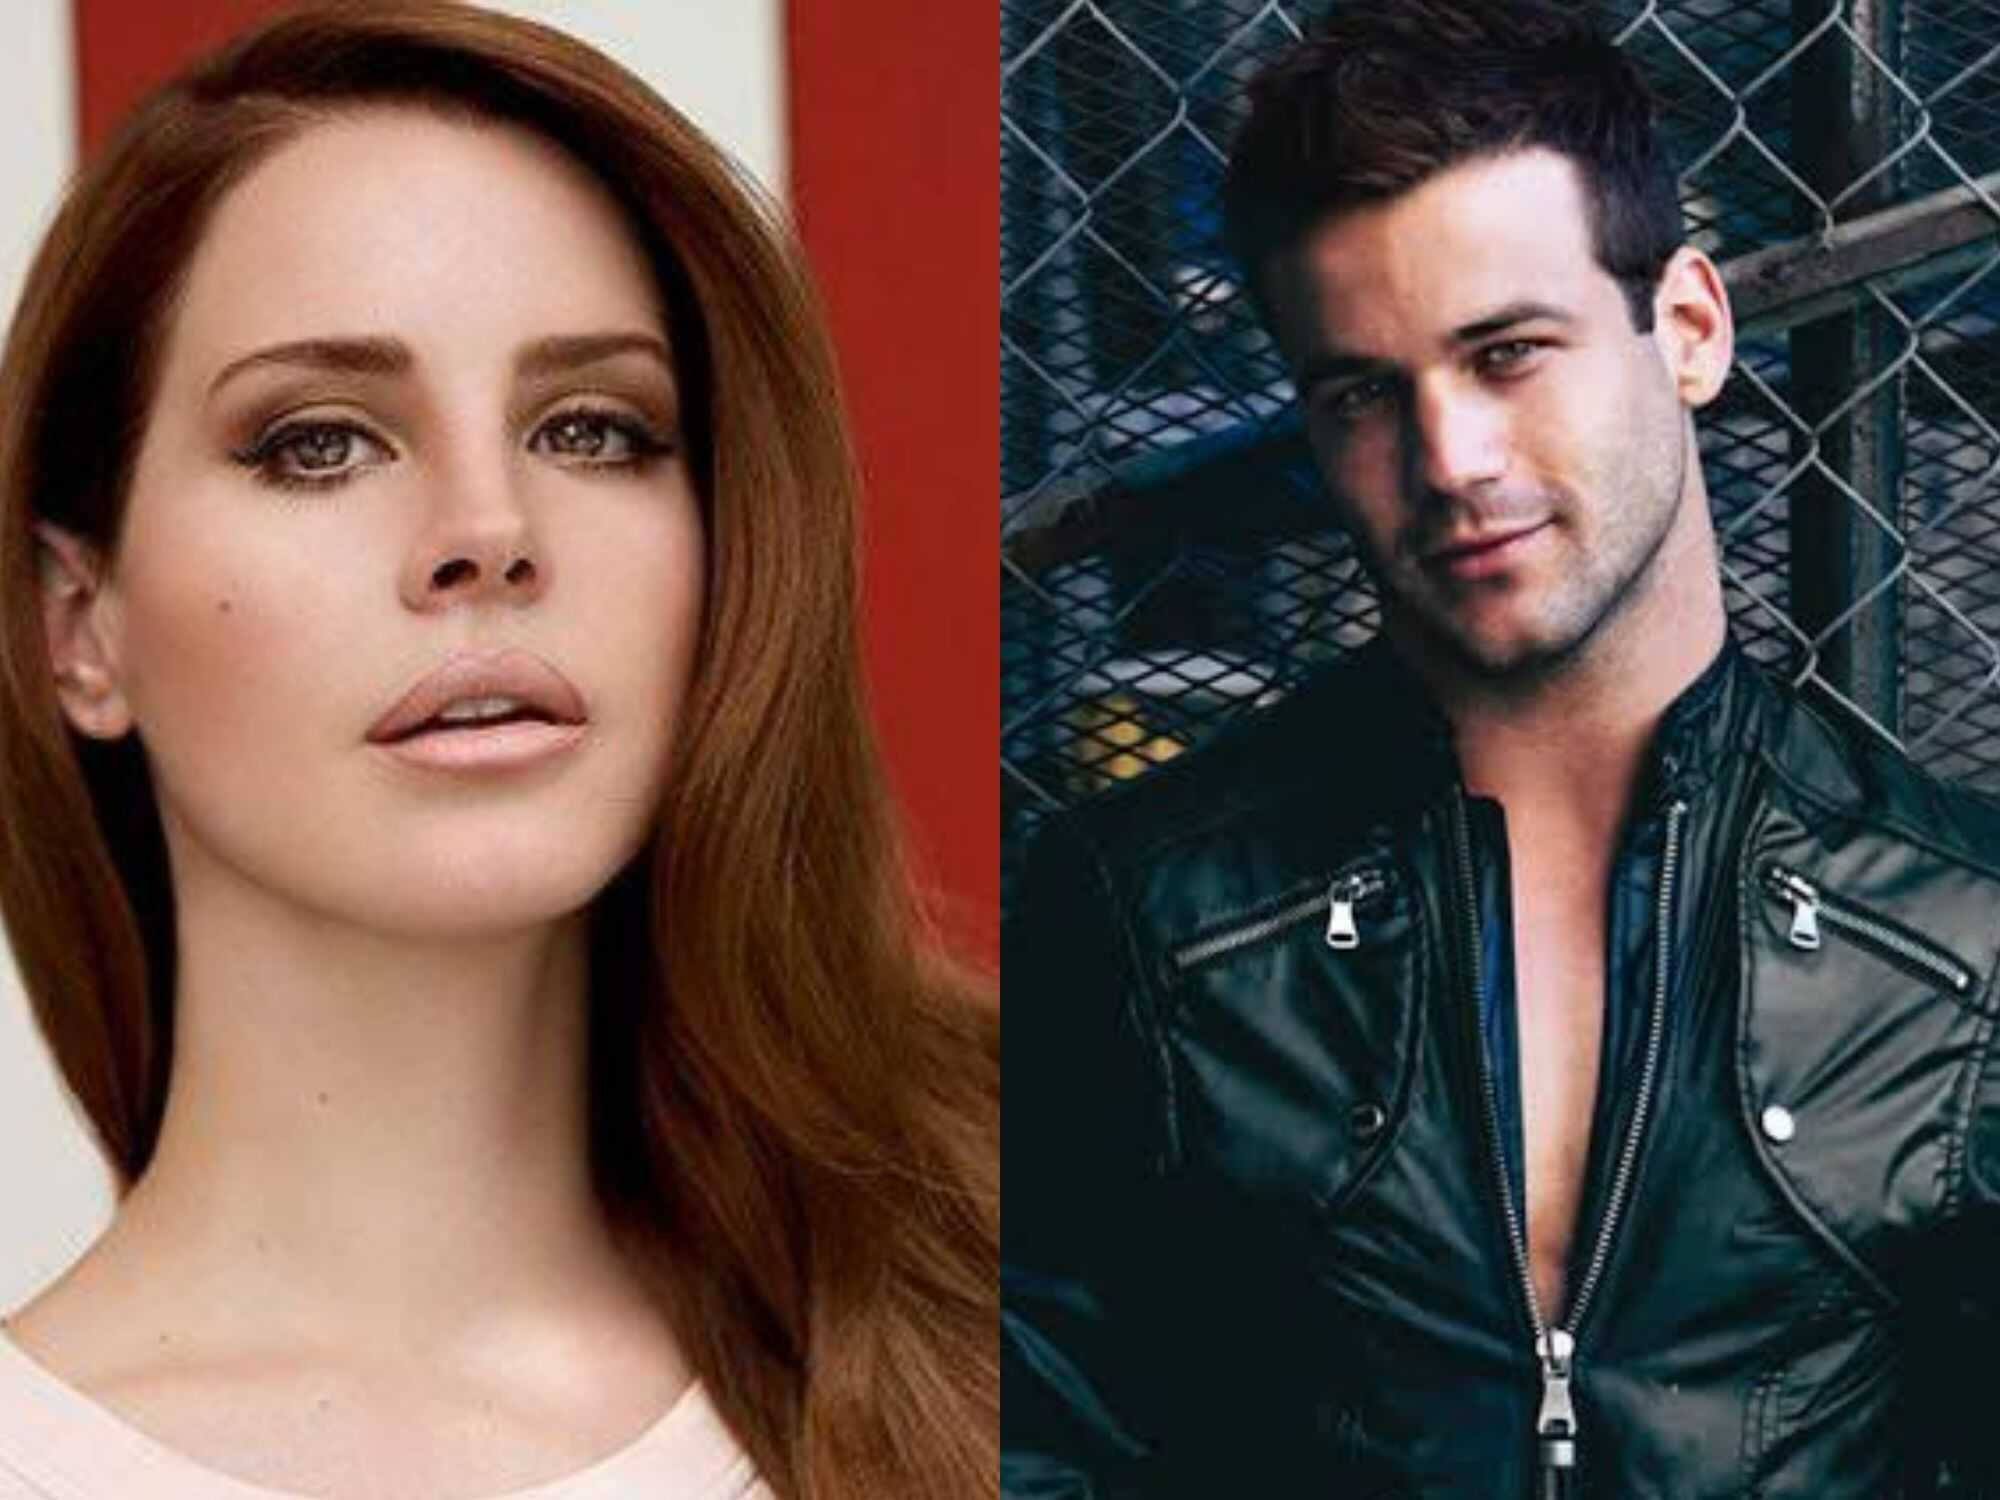 lana del rey engaged to beau clayton johnson